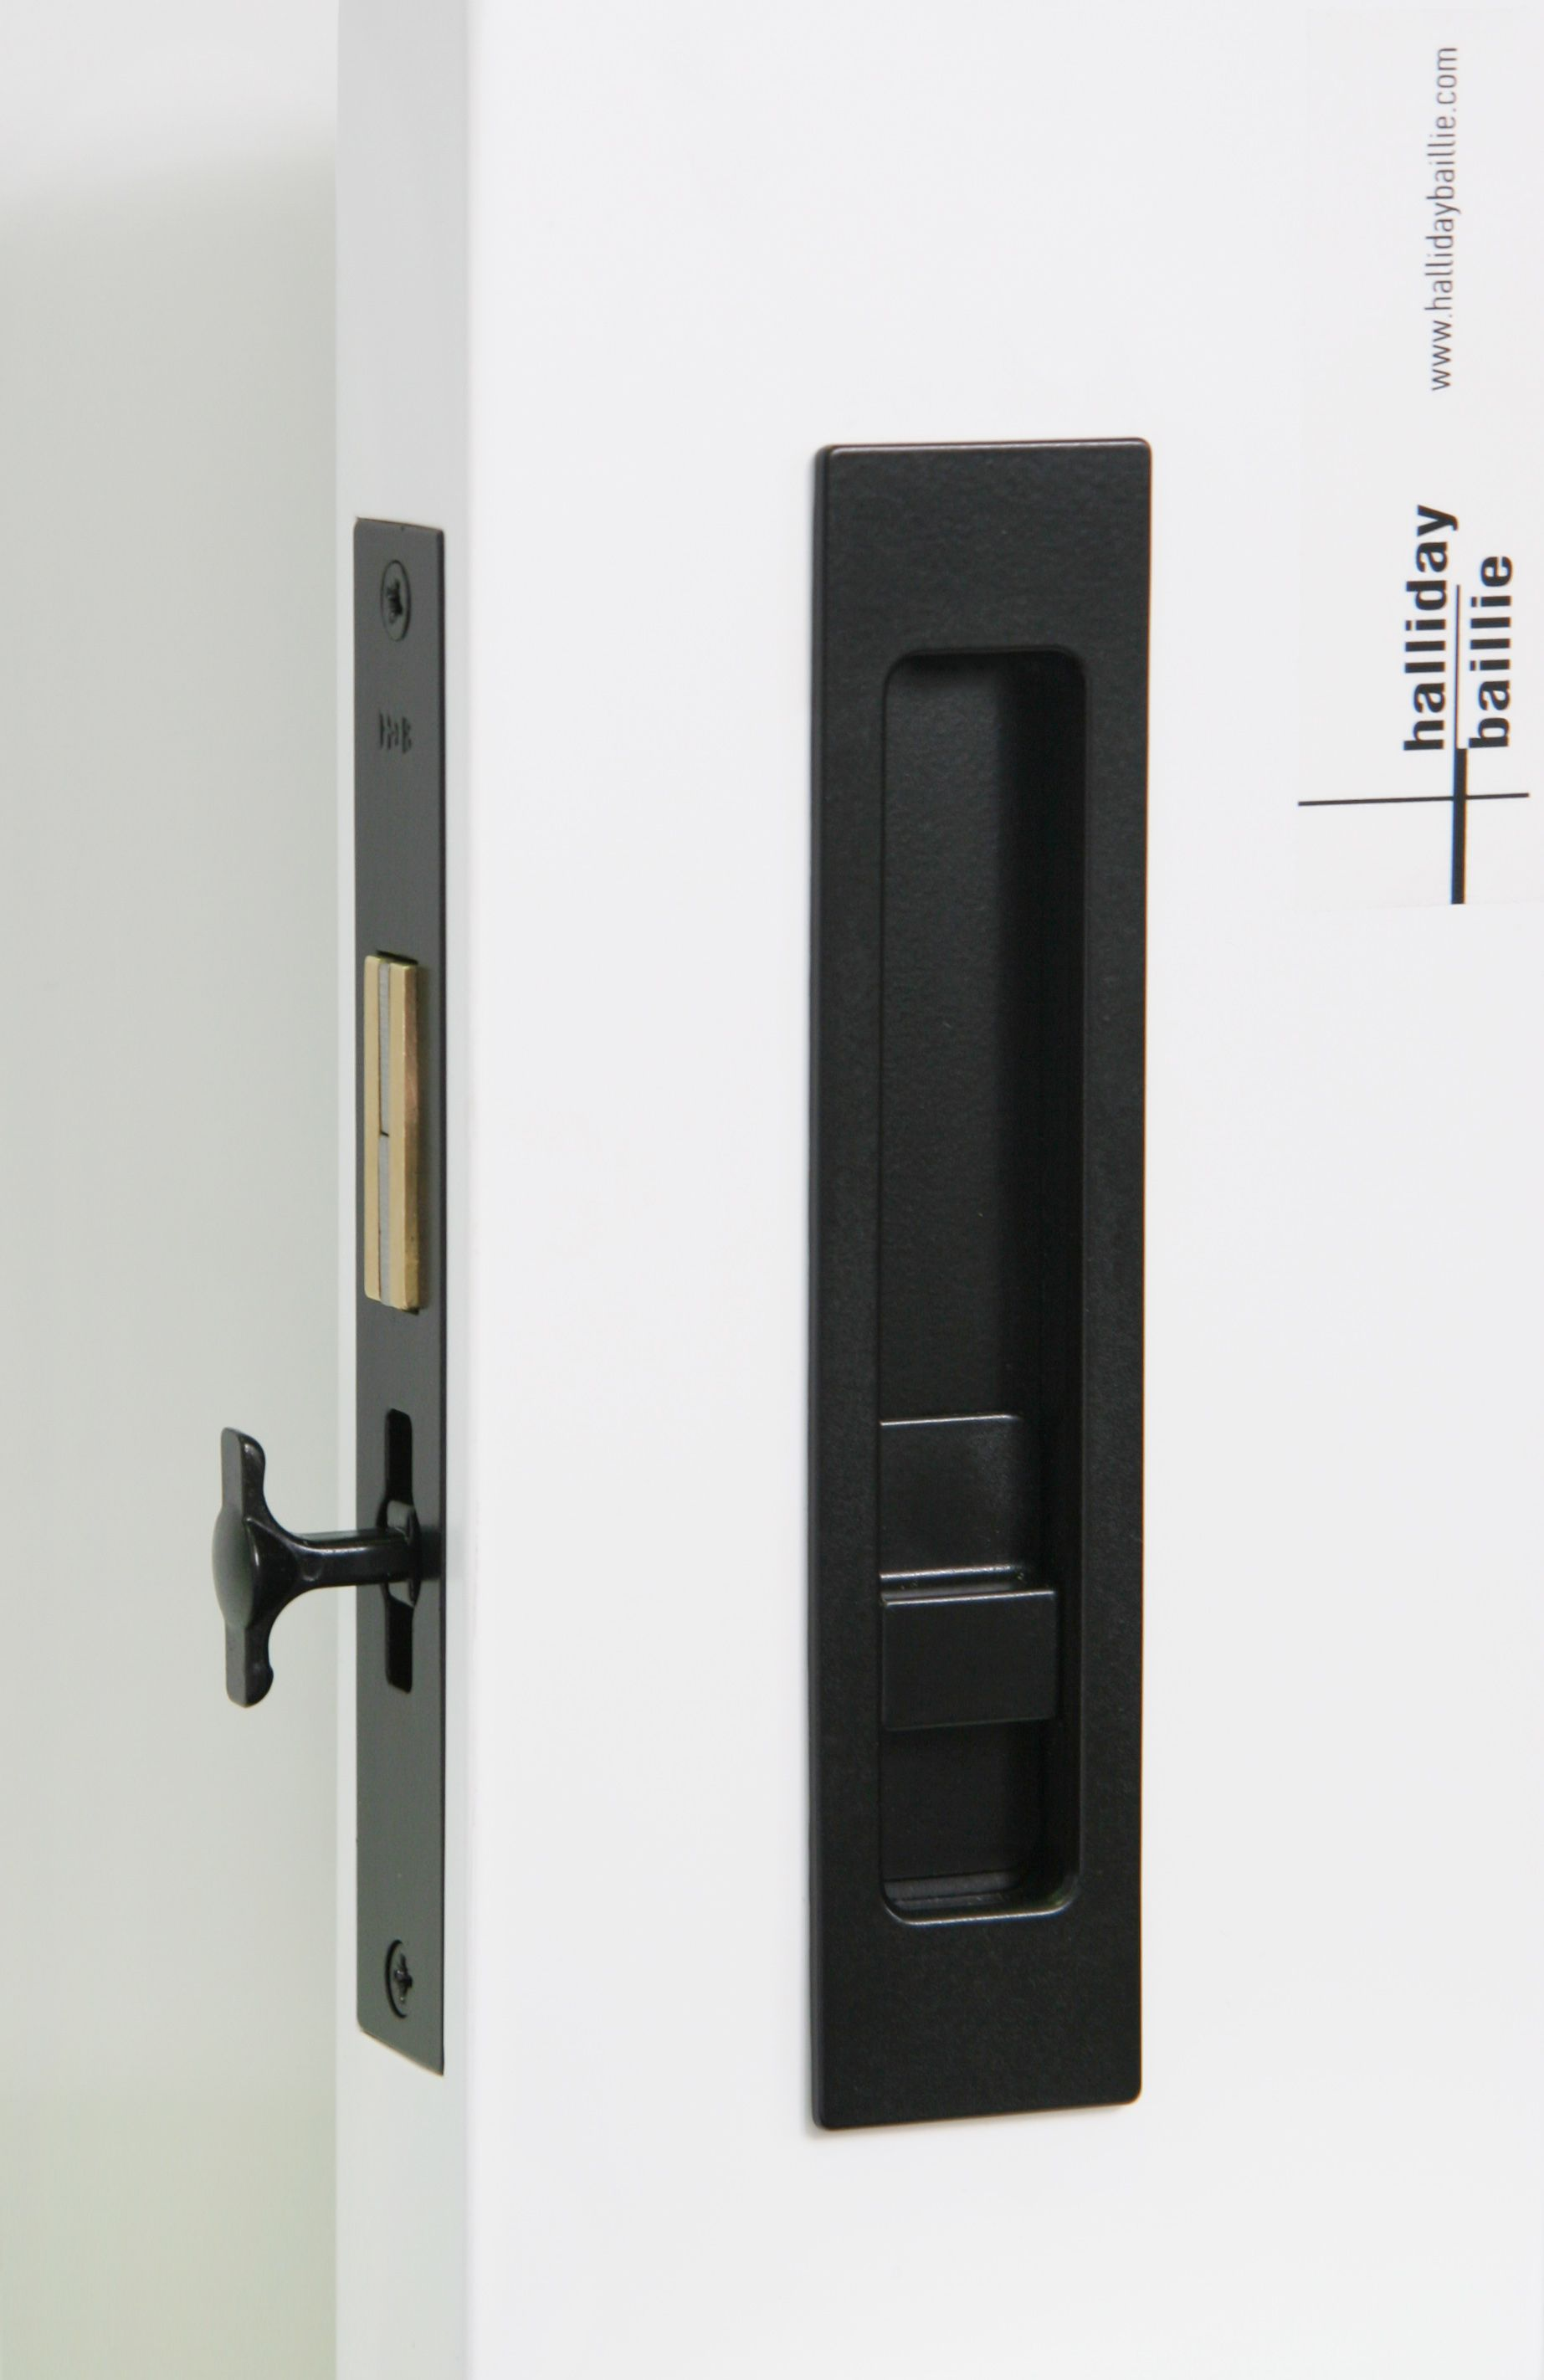 Hb690 Privacy Sliding Lock For Fully Flush Cavity Action 170mm Length With Discrete Emergency R Sliding Pocket Doors Pocket Doors Modern Sliding Door Hardware